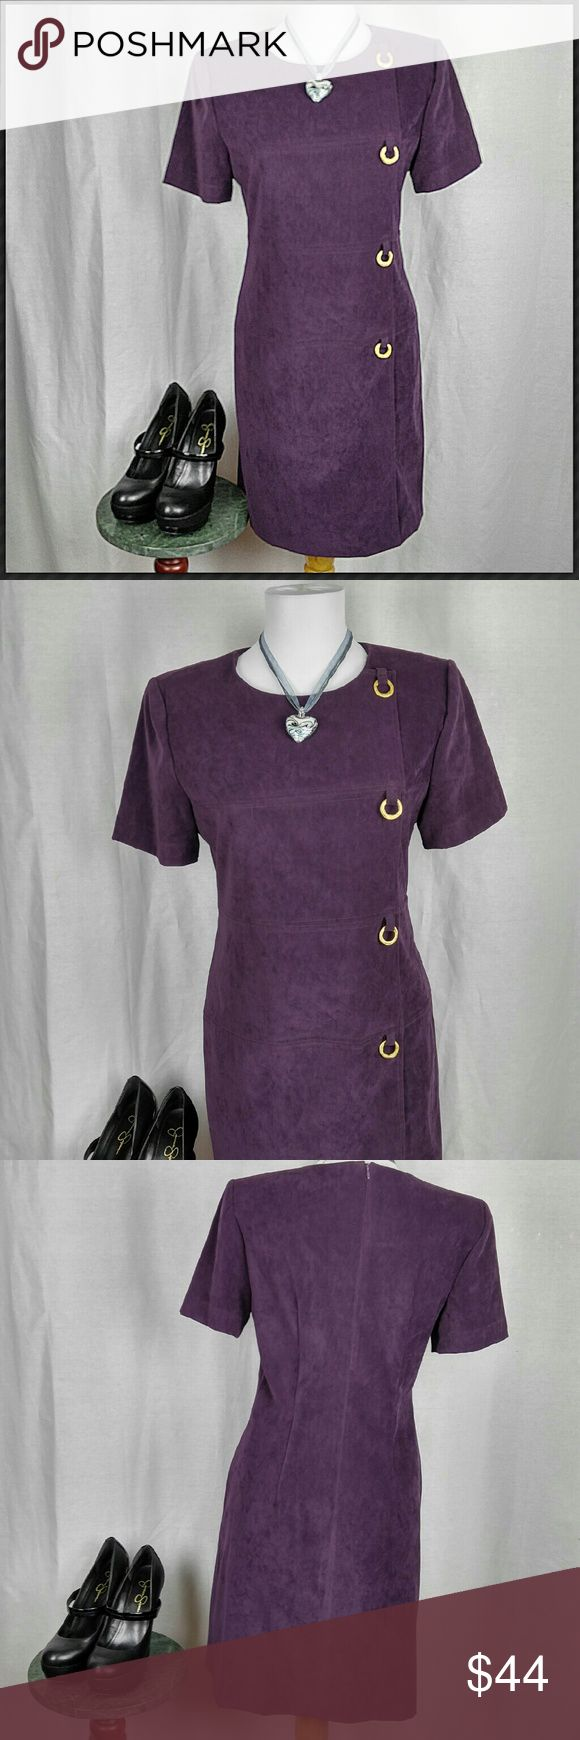 Jessica Howard Petite Dress Gorgeous purple Jessica Howard Petite dress with gold accents. Zip up back. Listing is for dress only, other items were used for styling purposes and are not included. Jessica Howard Dresses